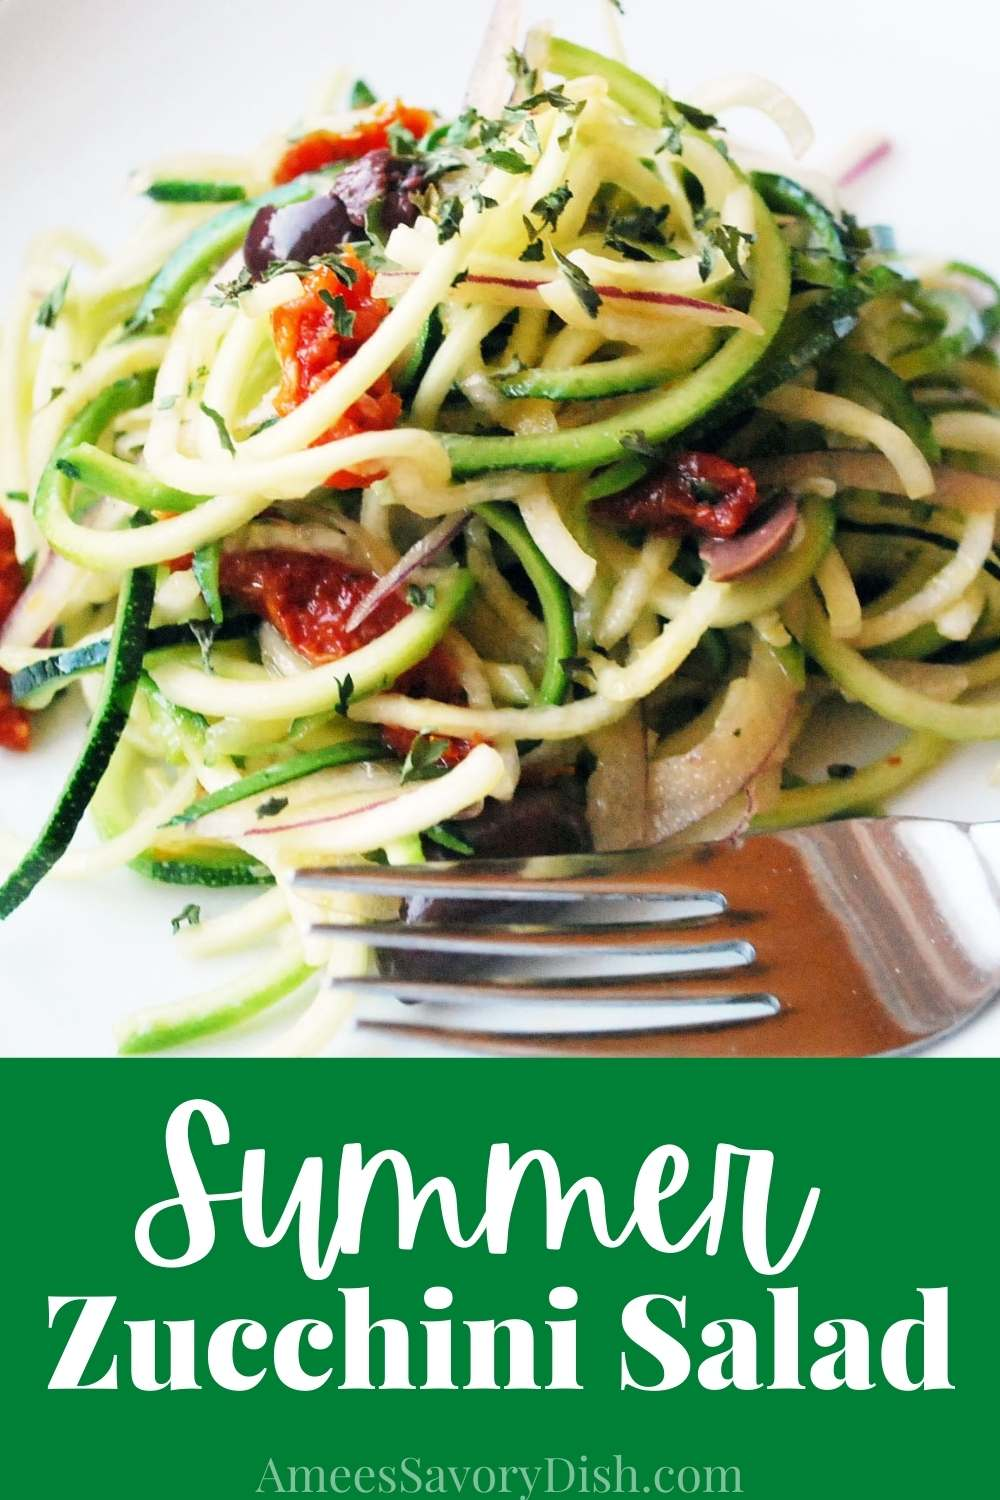 This Summer Zucchini Salad brings together zucchini spirals, olives, sun-dried tomatoes, and vibrant citrus dressing to make a quick and easy cold summer side dish. via @Ameessavorydish